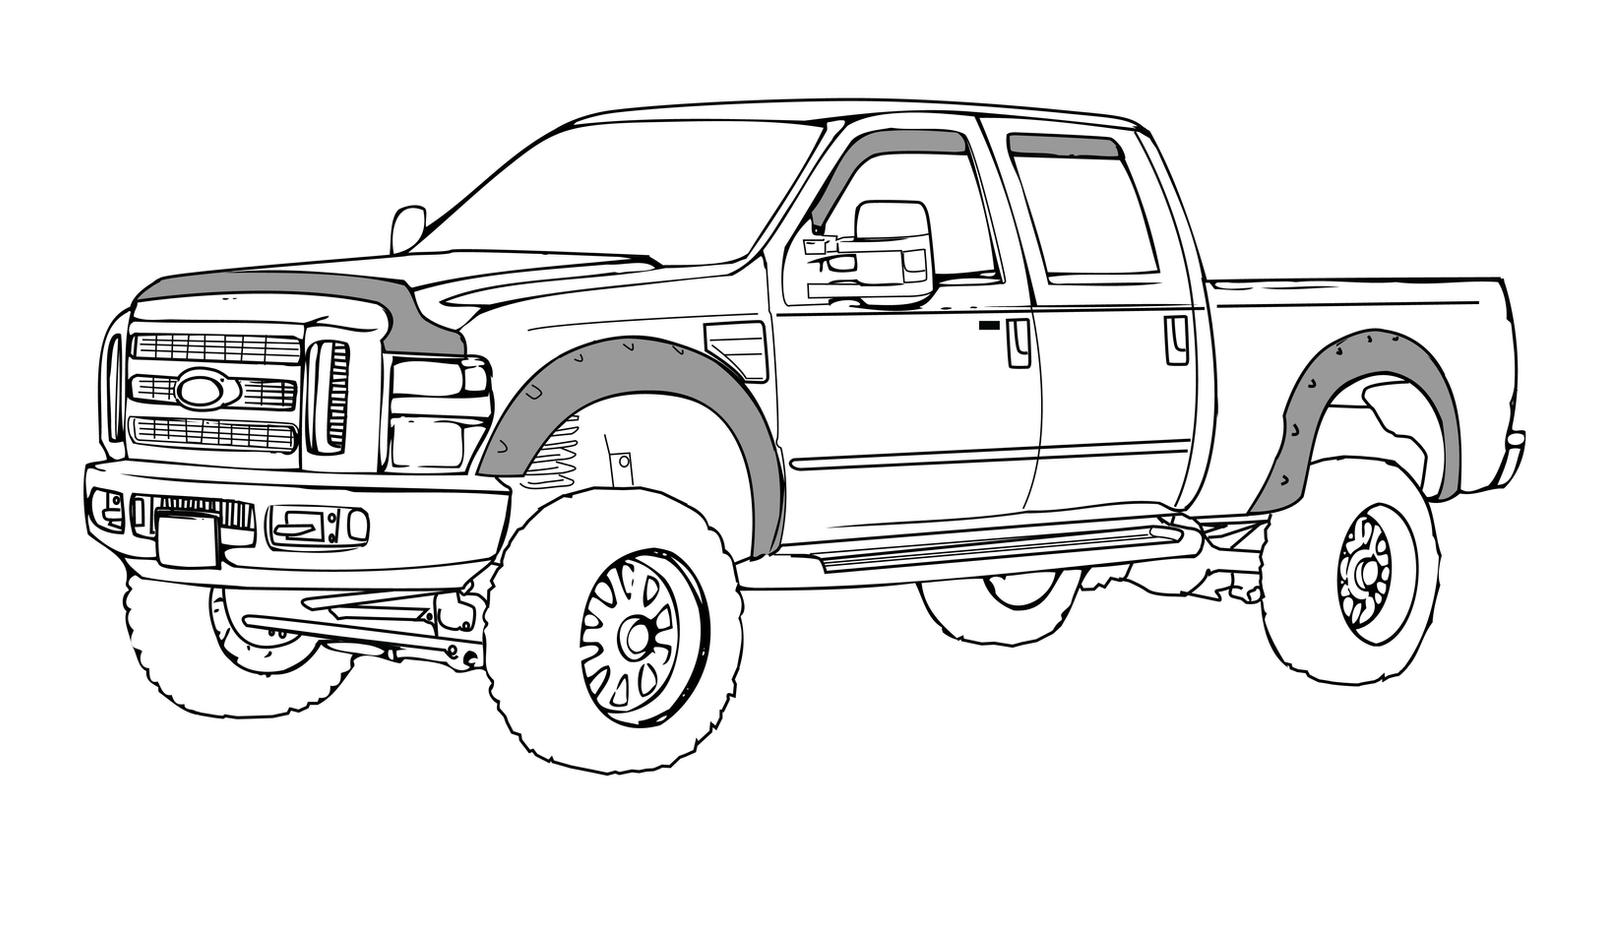 Dodge ram 3500 quad cab 160 wb 4x4 besides 2016 Chevy Silverado Double Cab in addition Dodge Car Ram Srt 10 Coloring Pages likewise 339107046913566792 further Ram Truck Cliparts. on drawings of trucks chevy 4x4